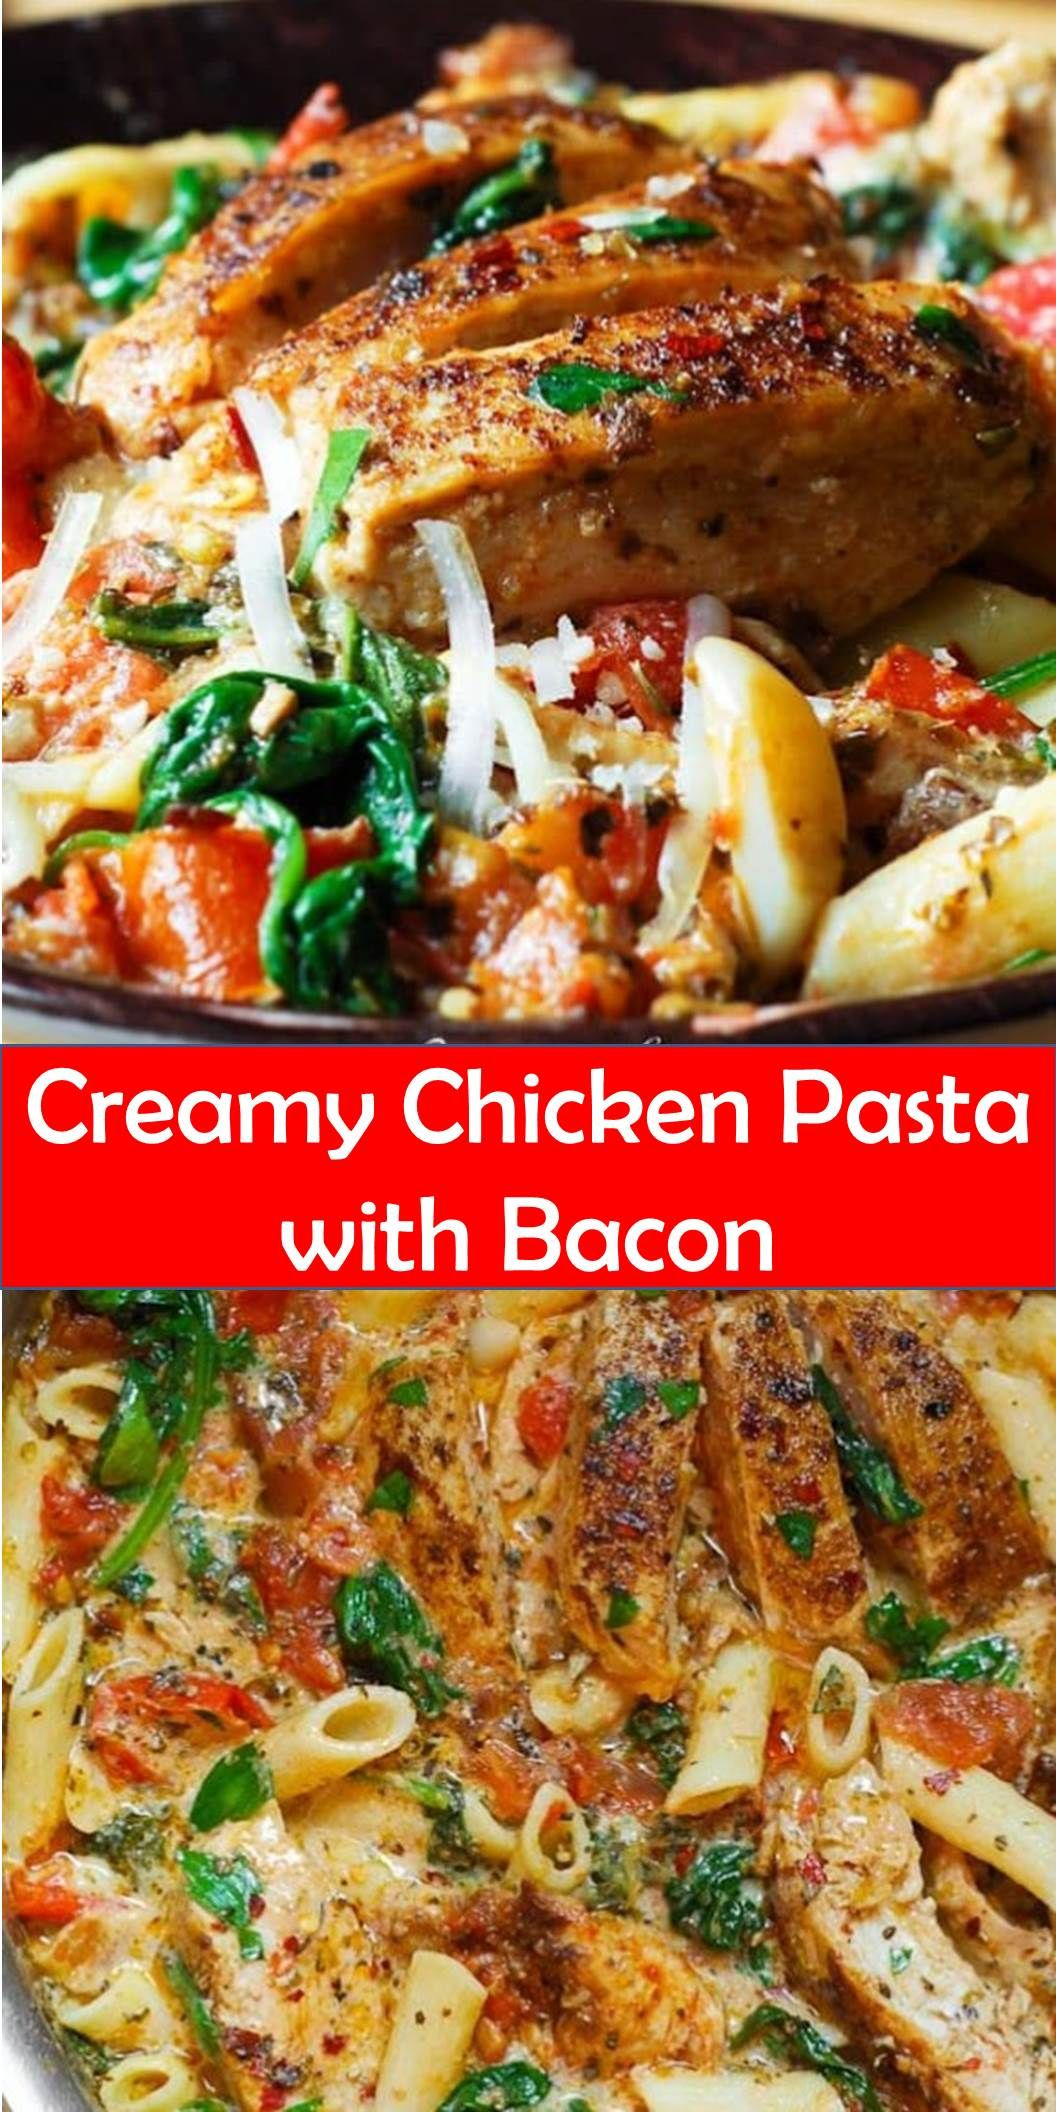 Yummy Creamy Chicken Pasta With Bacon Your Family S Favorite Food And Drink Creamy Chicken Pasta With Bacon The Delicious Creamy S Yummmmm In 2019